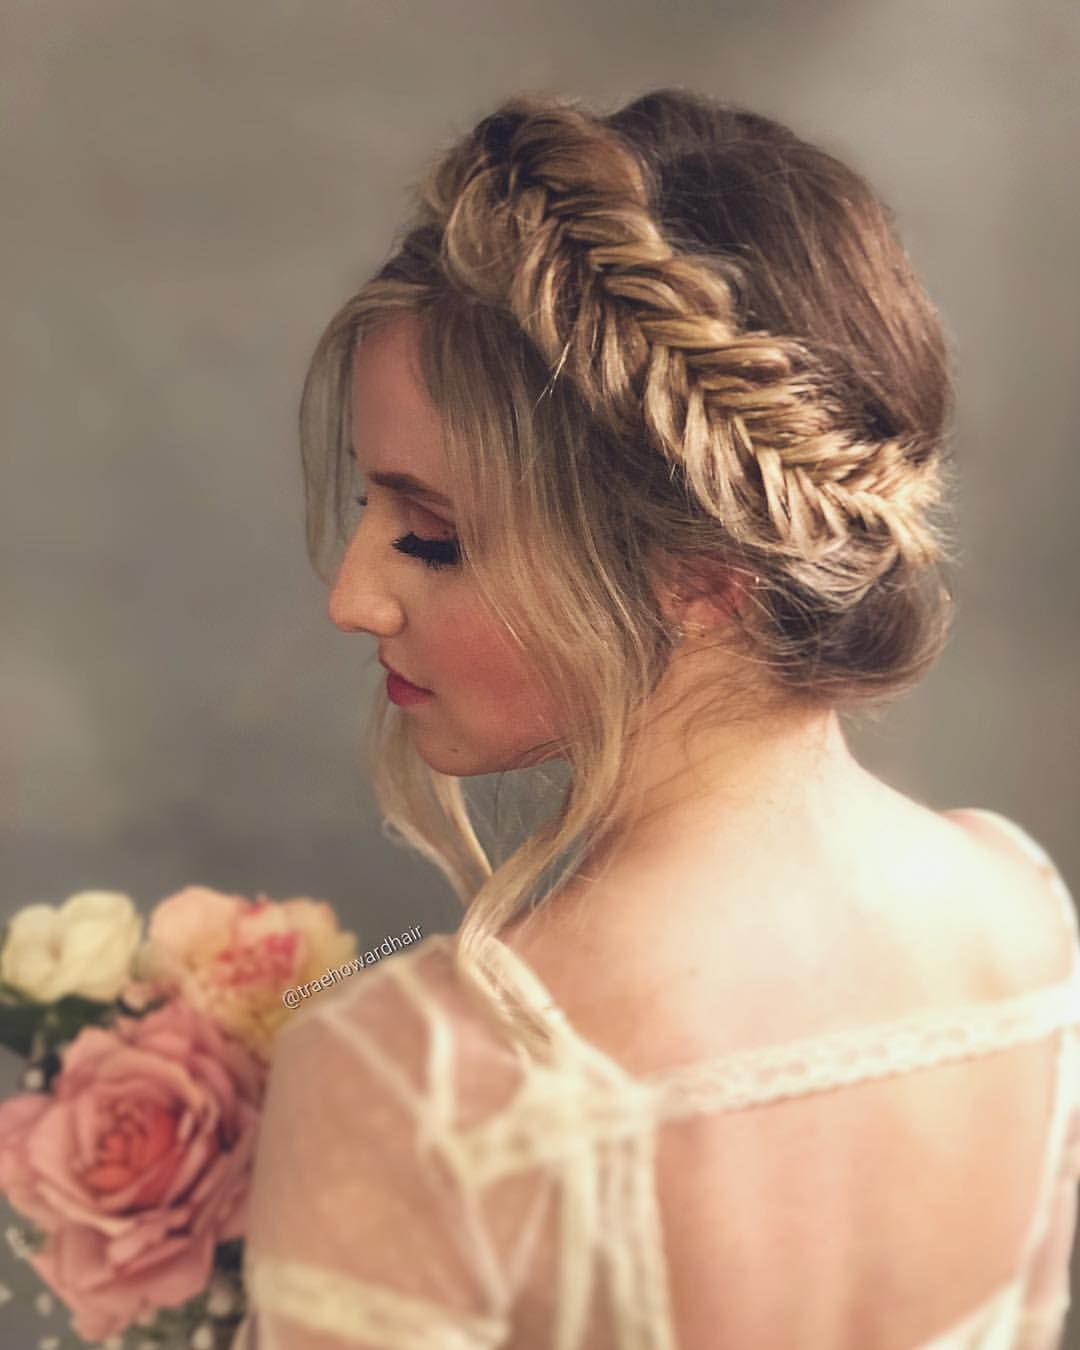 Wedding Hairstyle Nashville: Nashville Bridal Hairstylist Trae Howard Hair